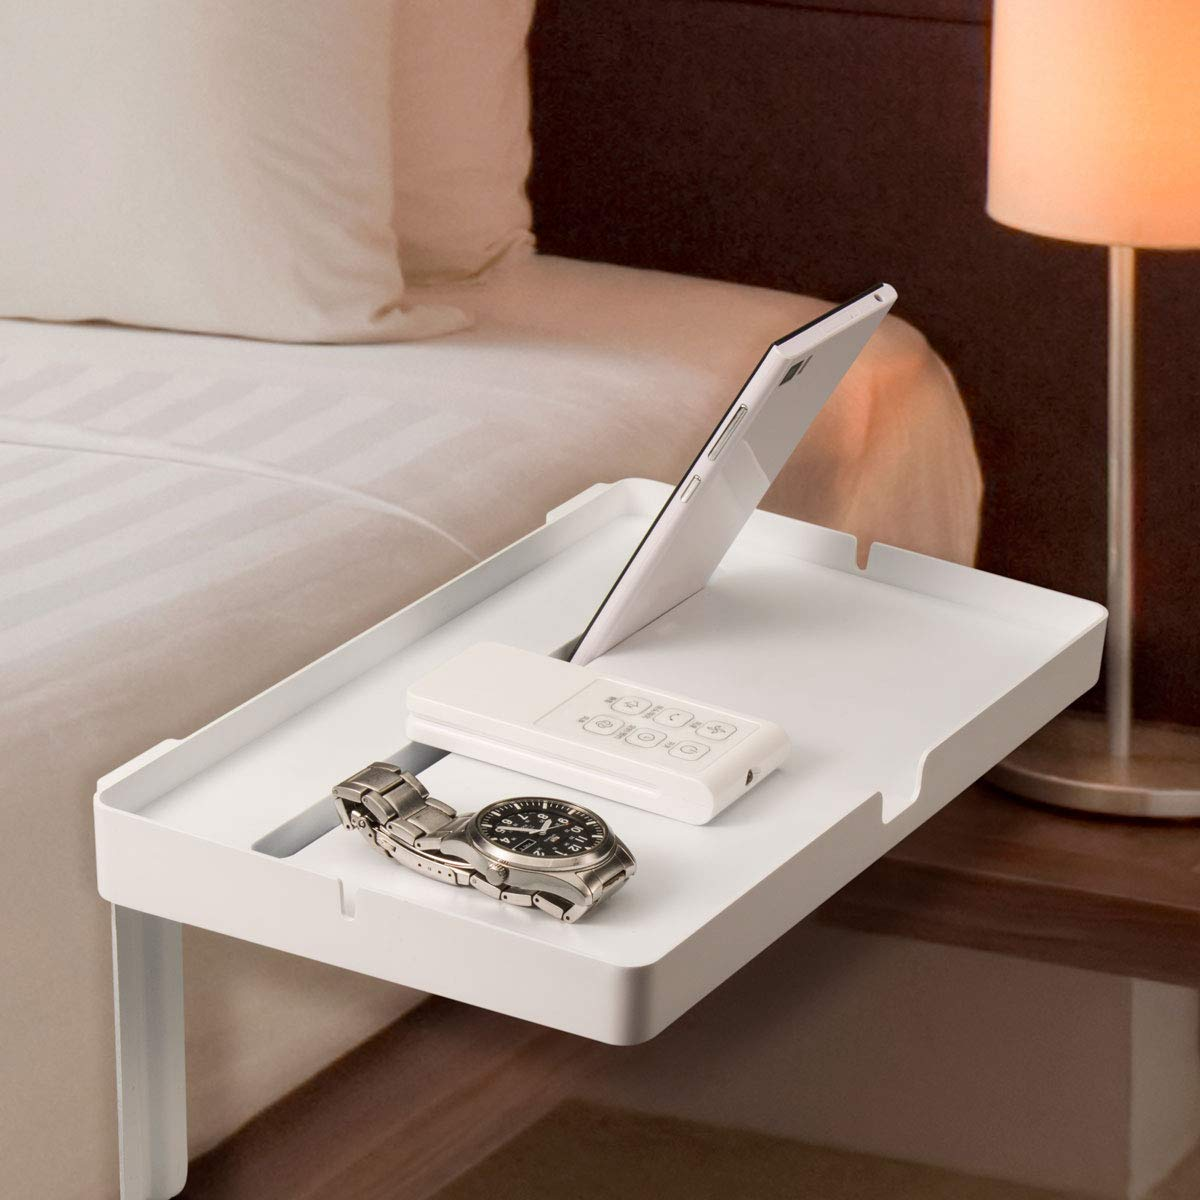 ATECH Phone Bed Nightstand Table Bedside Shelf with Phone Stand Cable Organizer for College Bunk Bed, Dorm Room - No Installation - holds Glasses, Drinks, Books, and Remote (White)